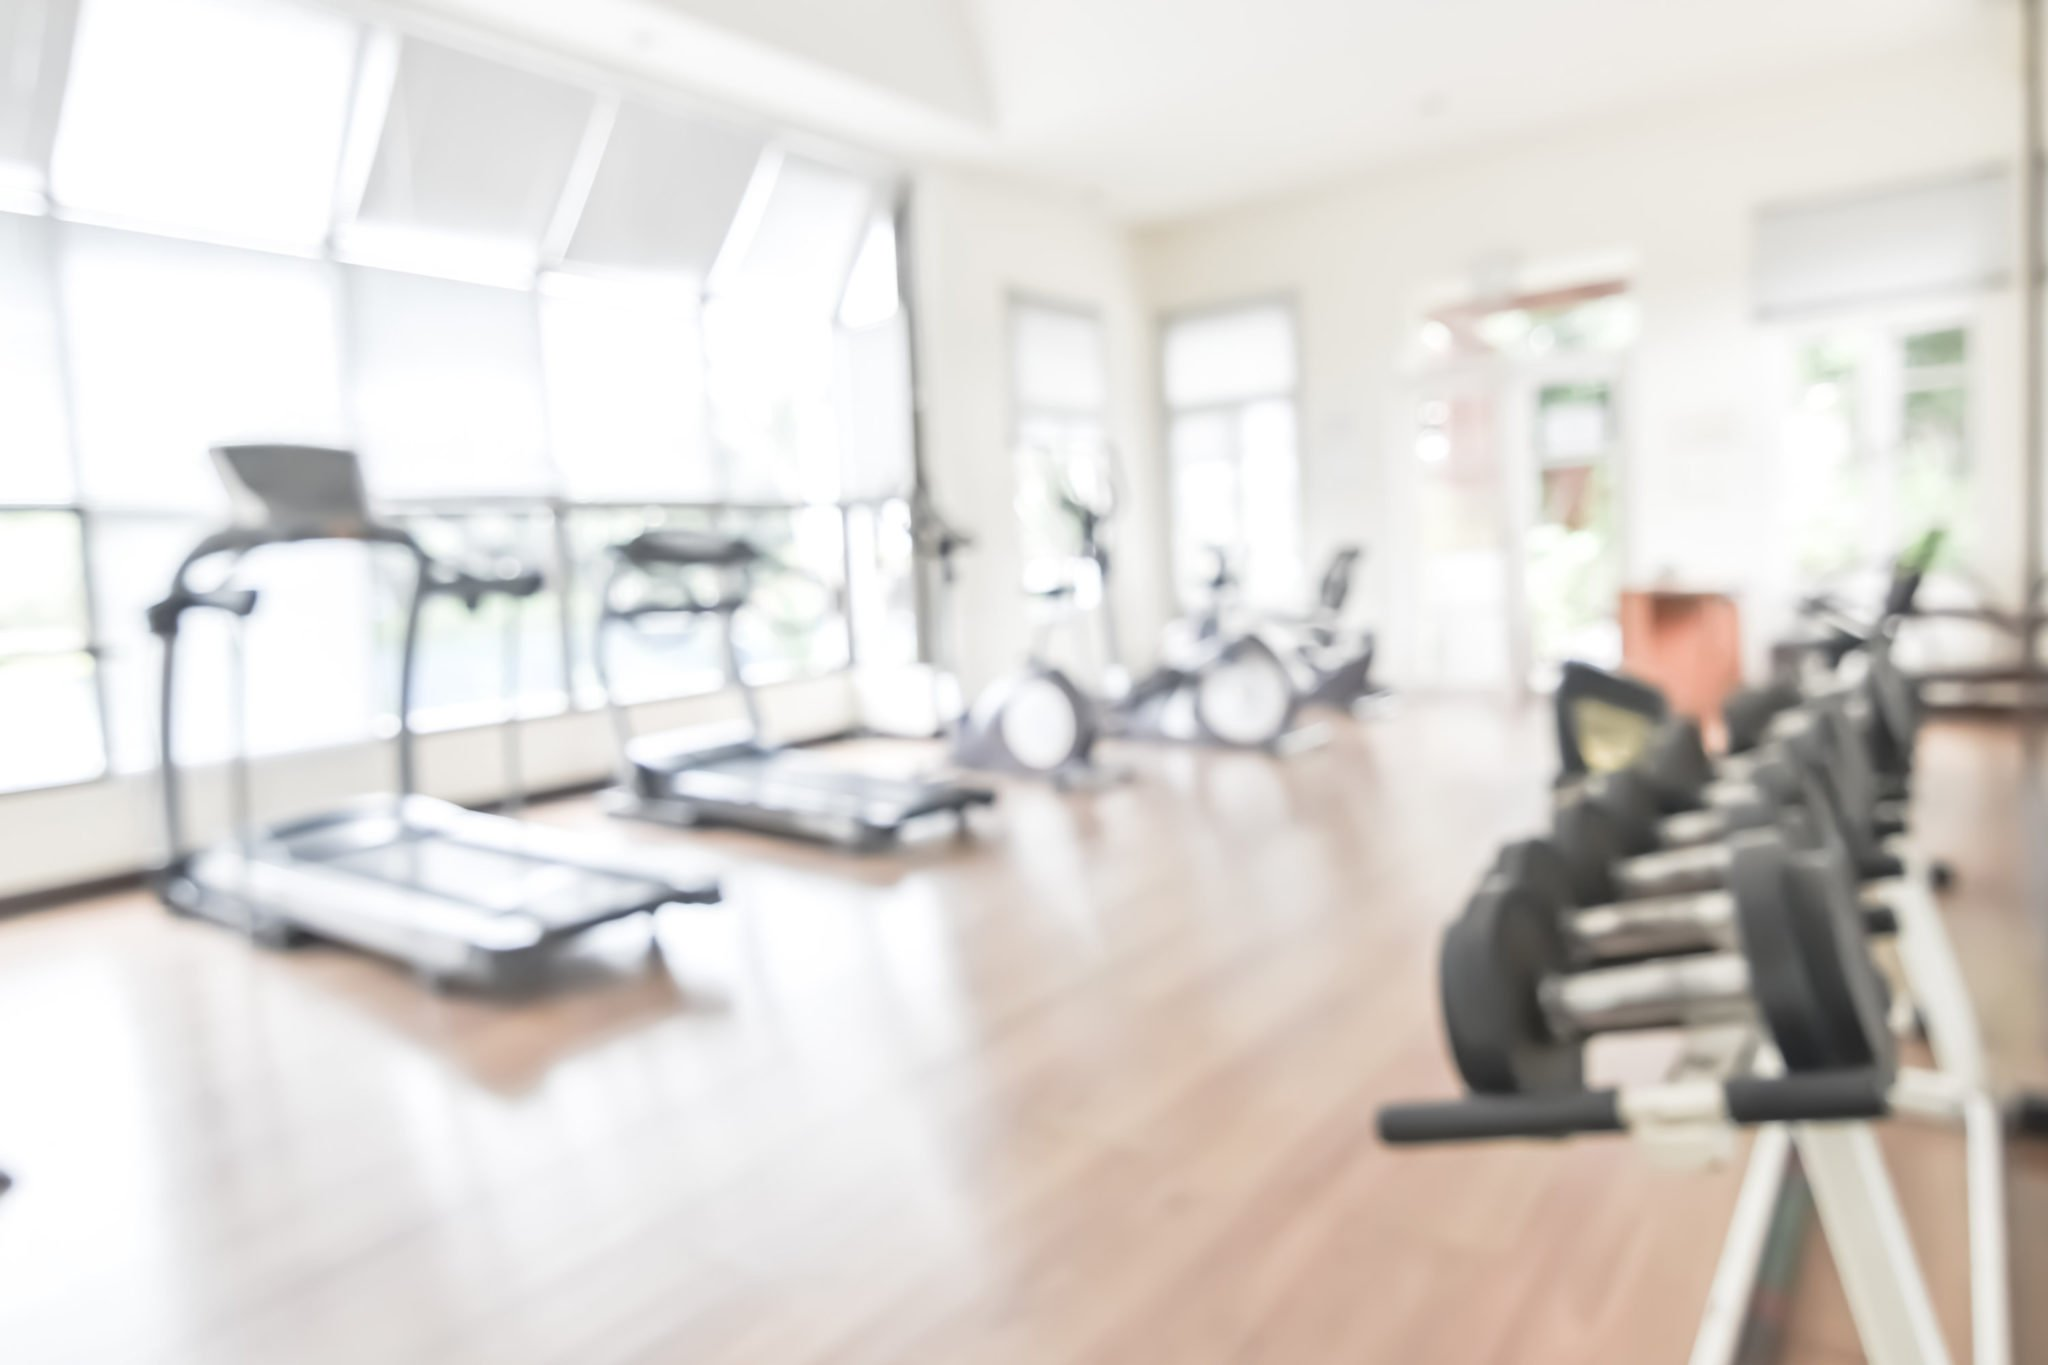 Here S How Dc Area Gyms And Fitness Studios Are Handling The Covid 19 Crisis Washingtonian Dc